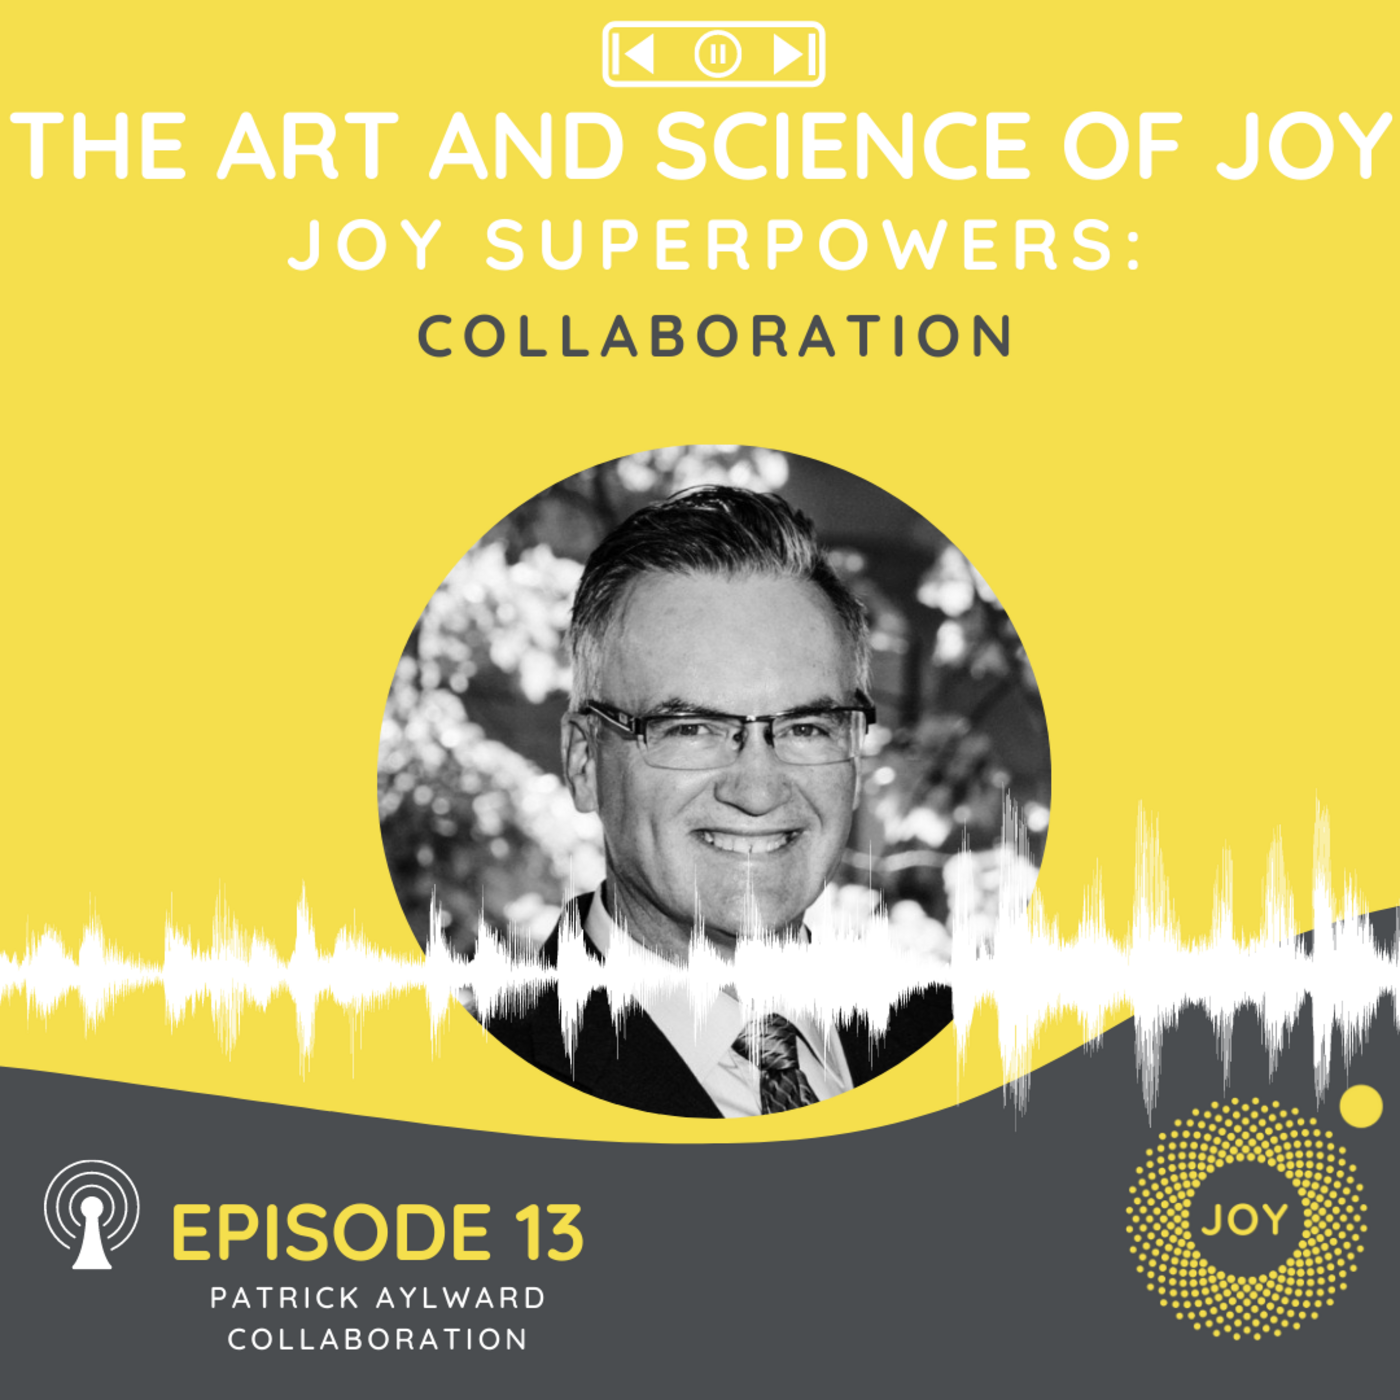 Artwork for podcast The Art and Science of Joy